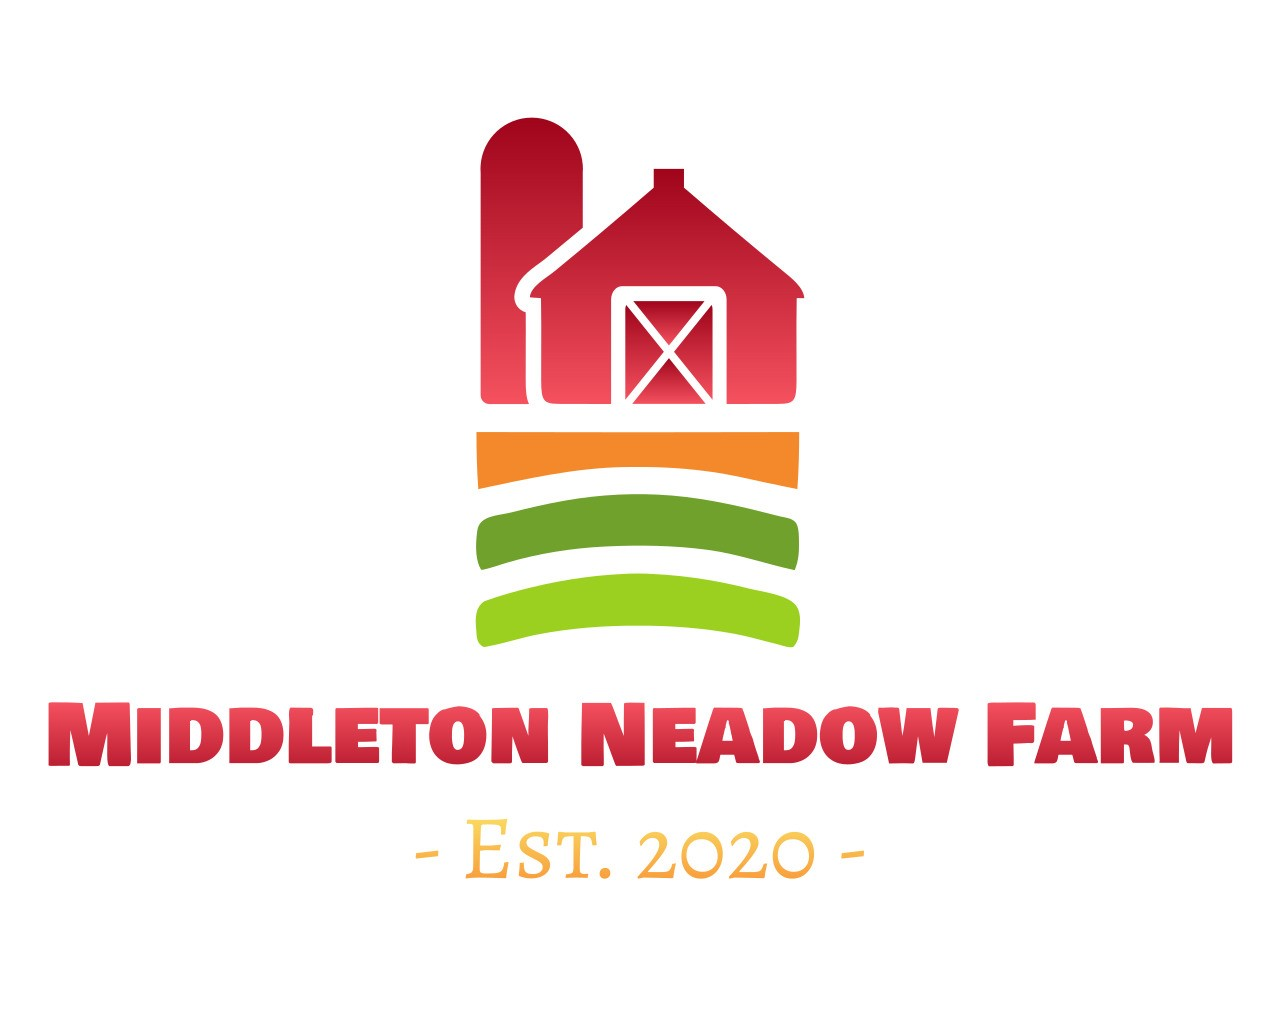 Middleton Neadow Farm logo